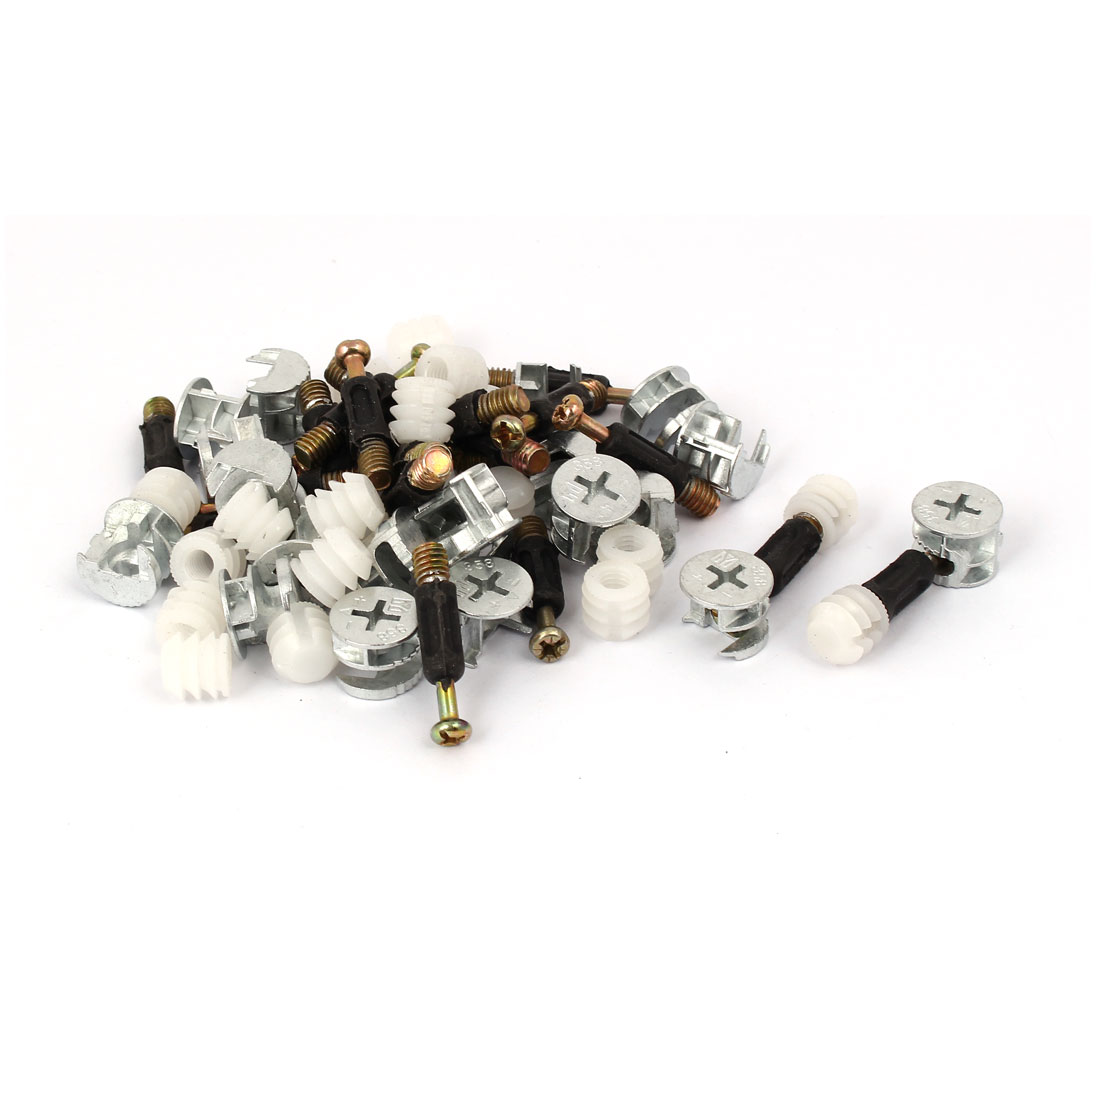 Furniture Connecting Eccentric Cam Dowel Inserted Nut Fitting 20 Sets